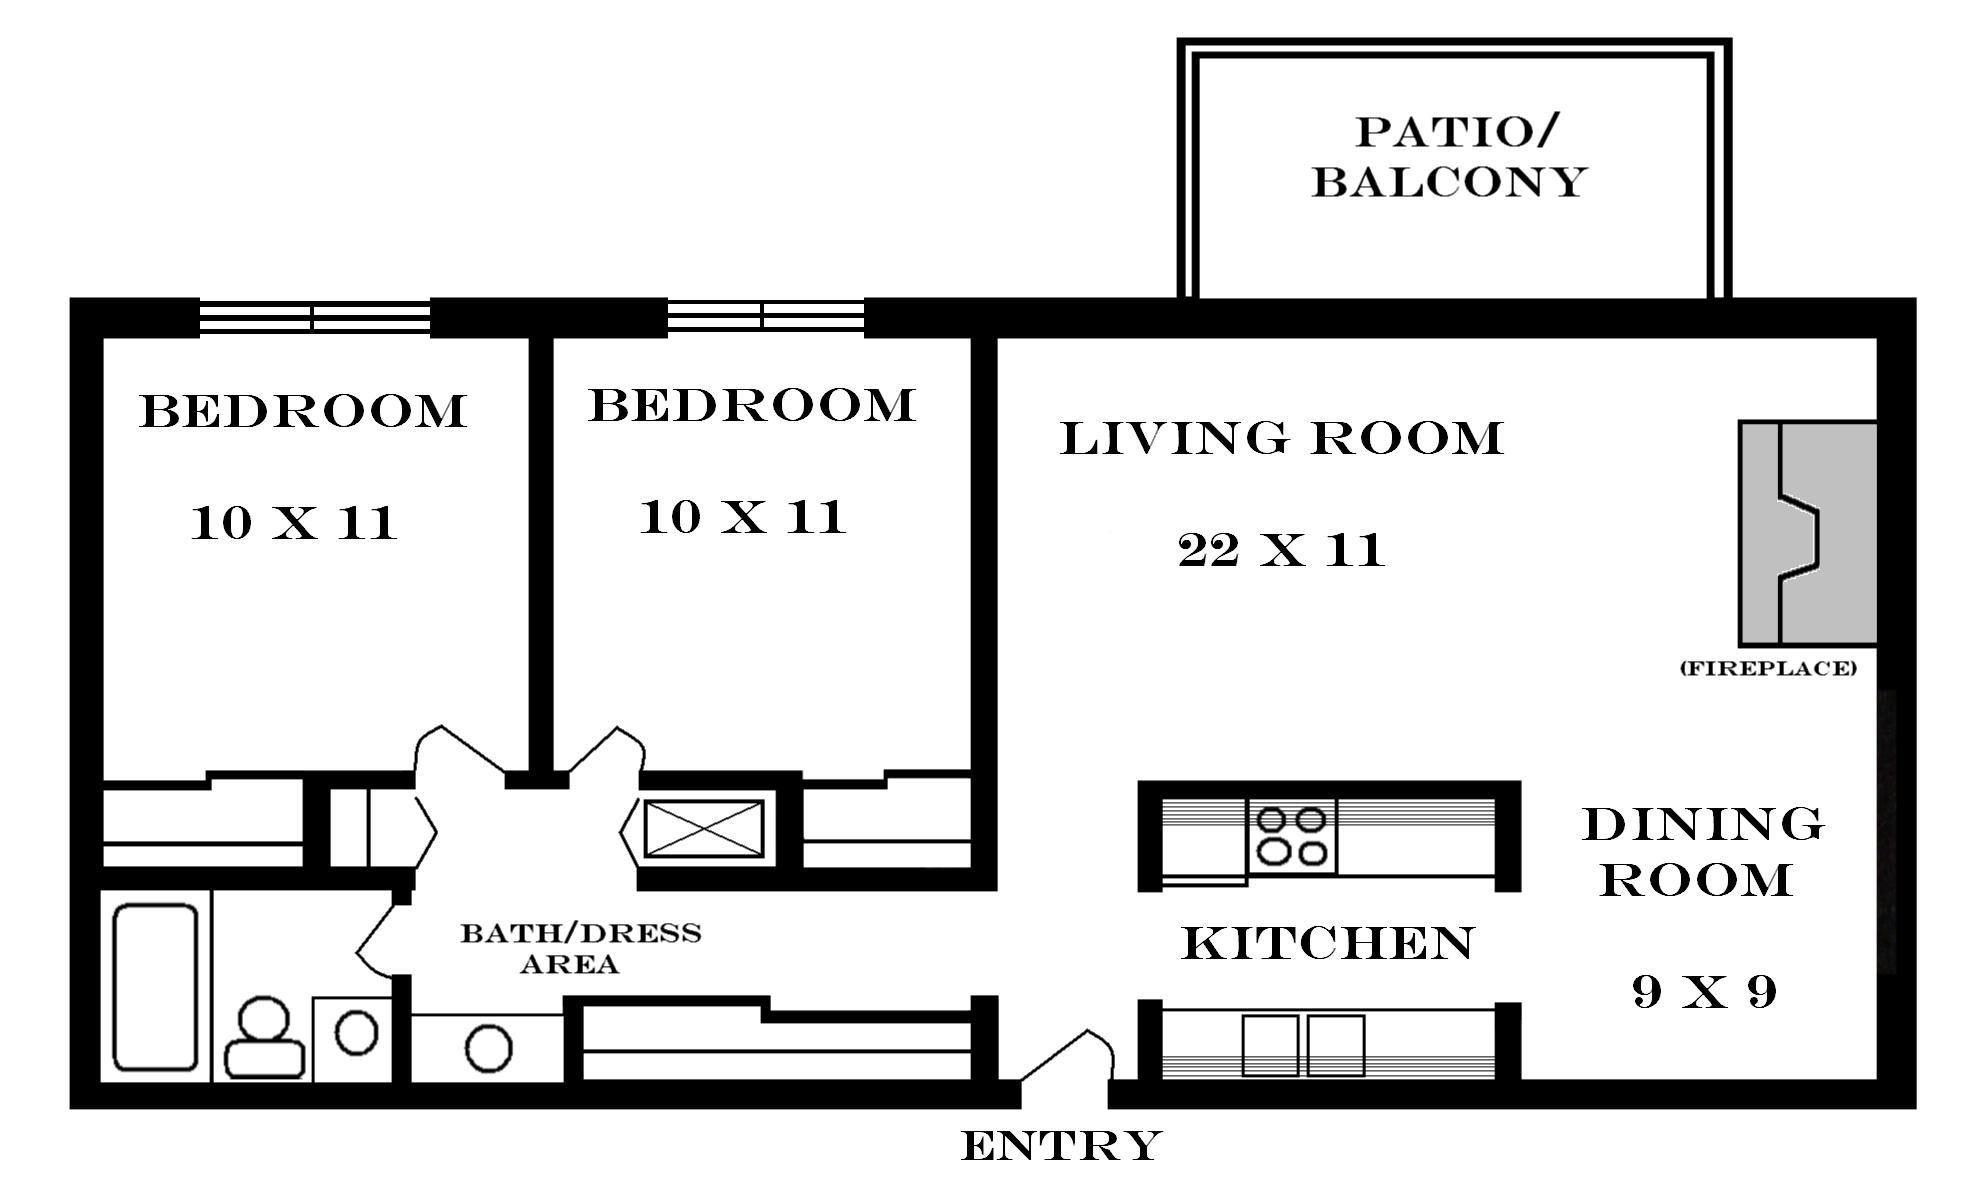 Small house floor plans 2 bedrooms 900 tiny houses Small house designs and floor plans